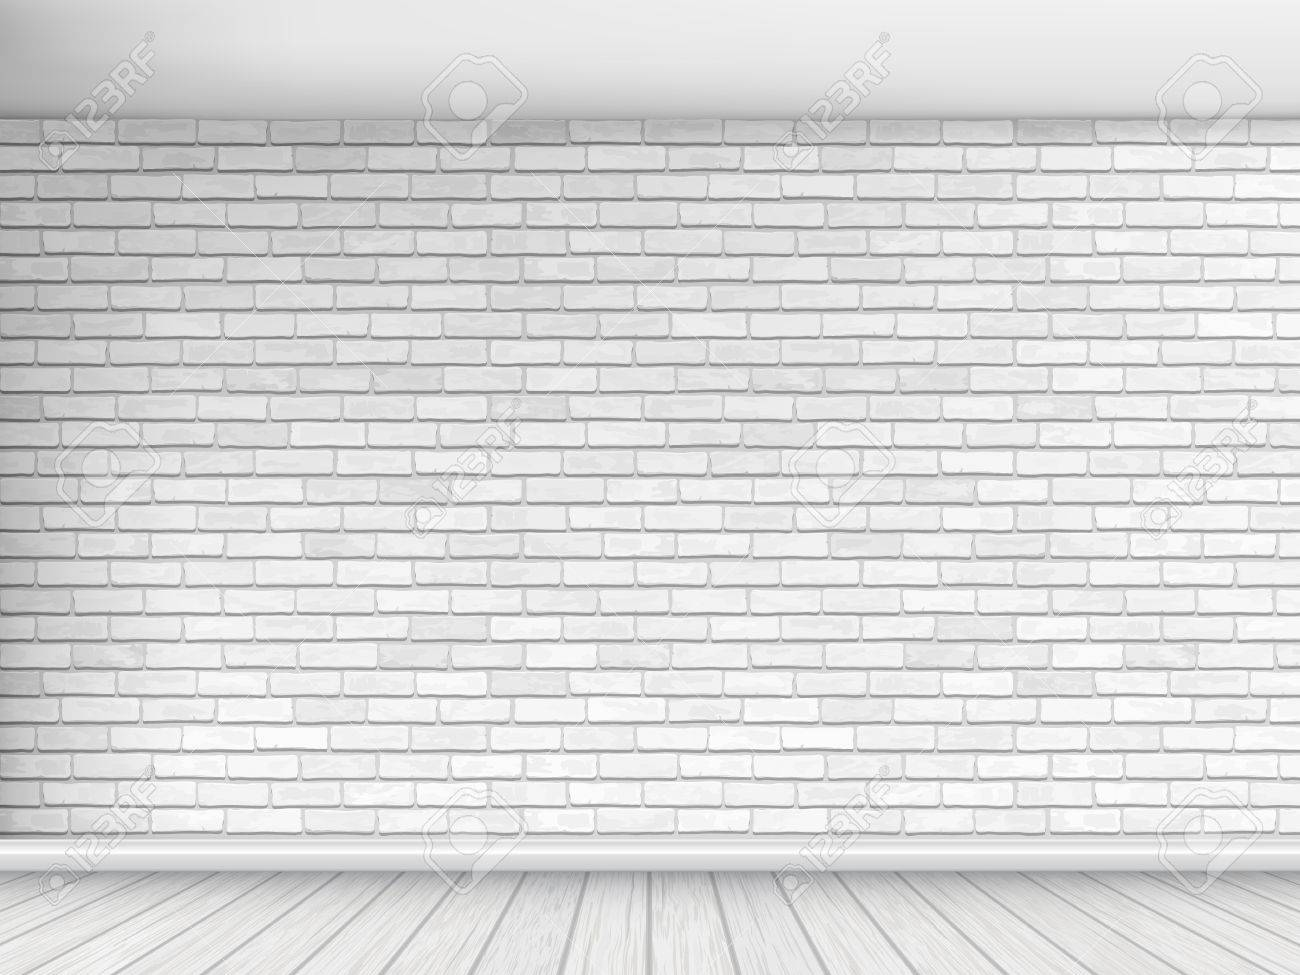 Old wall of white brick with floor and ceiling. Fragment of the interior. Architectural vector background. - 66919255